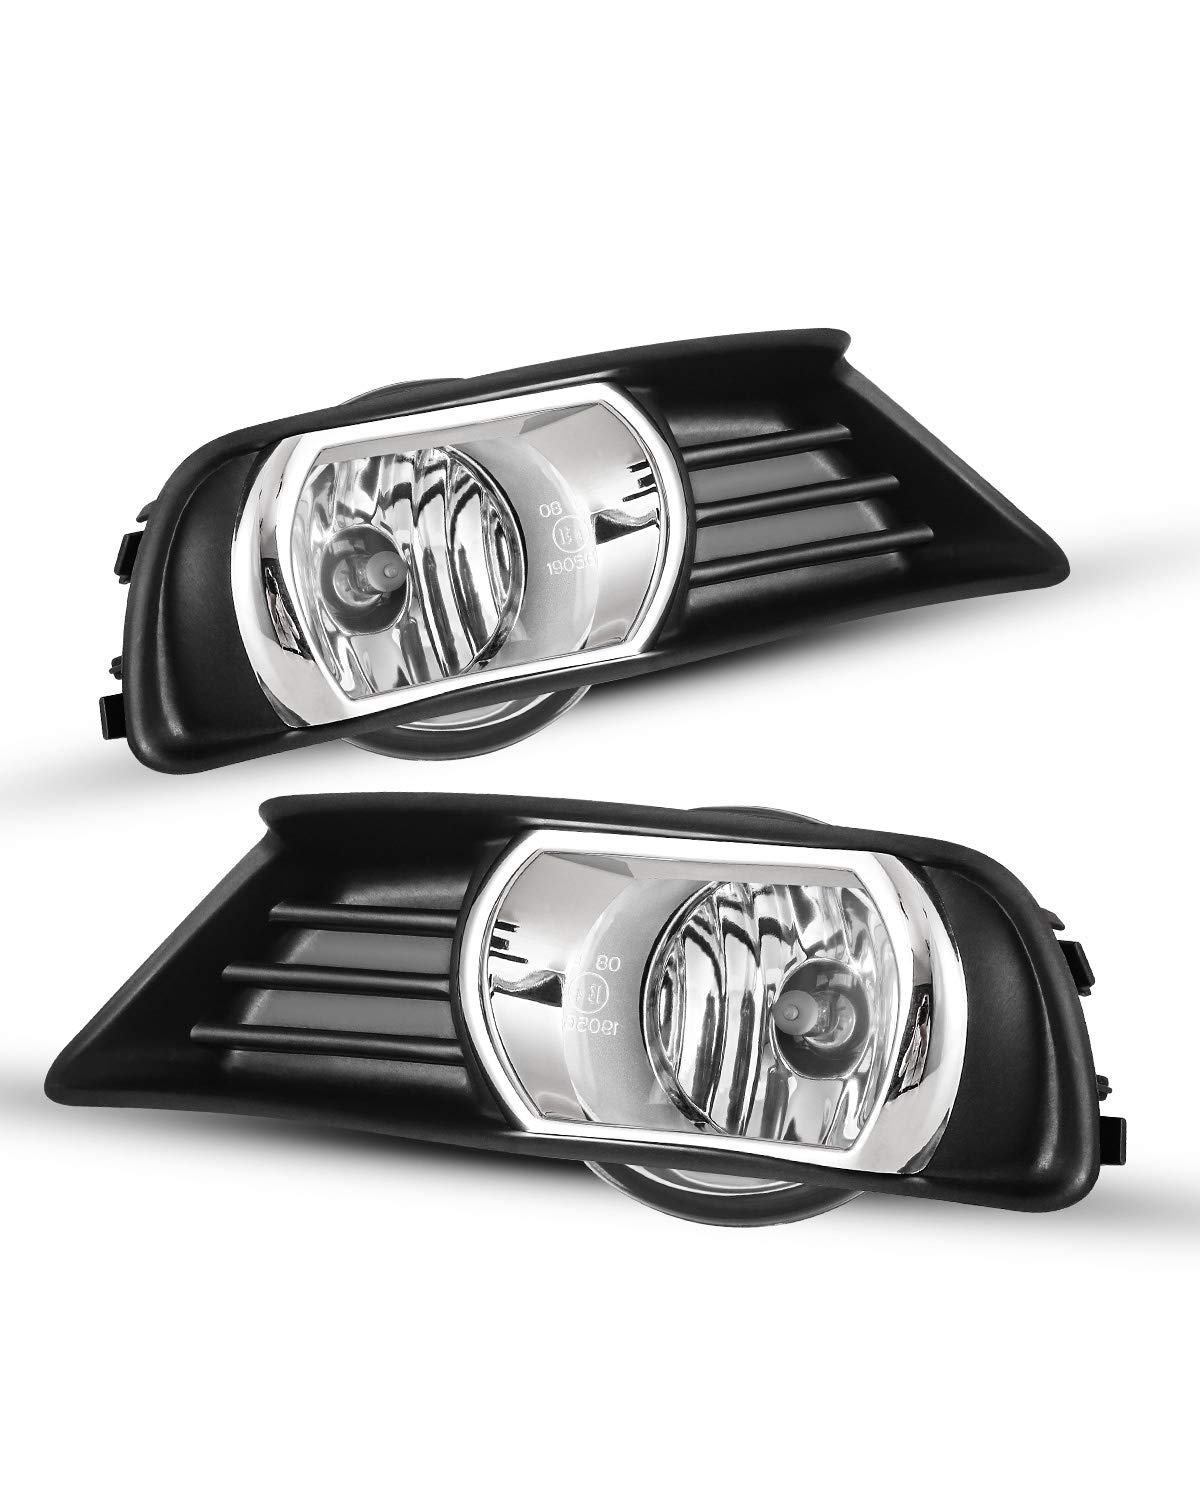 Fog Lights For 2007-2009 Toyota Camry (Only for US model) OEM Replacement Fog Lamps 2PCS With Clear Lens AUTOWIKI